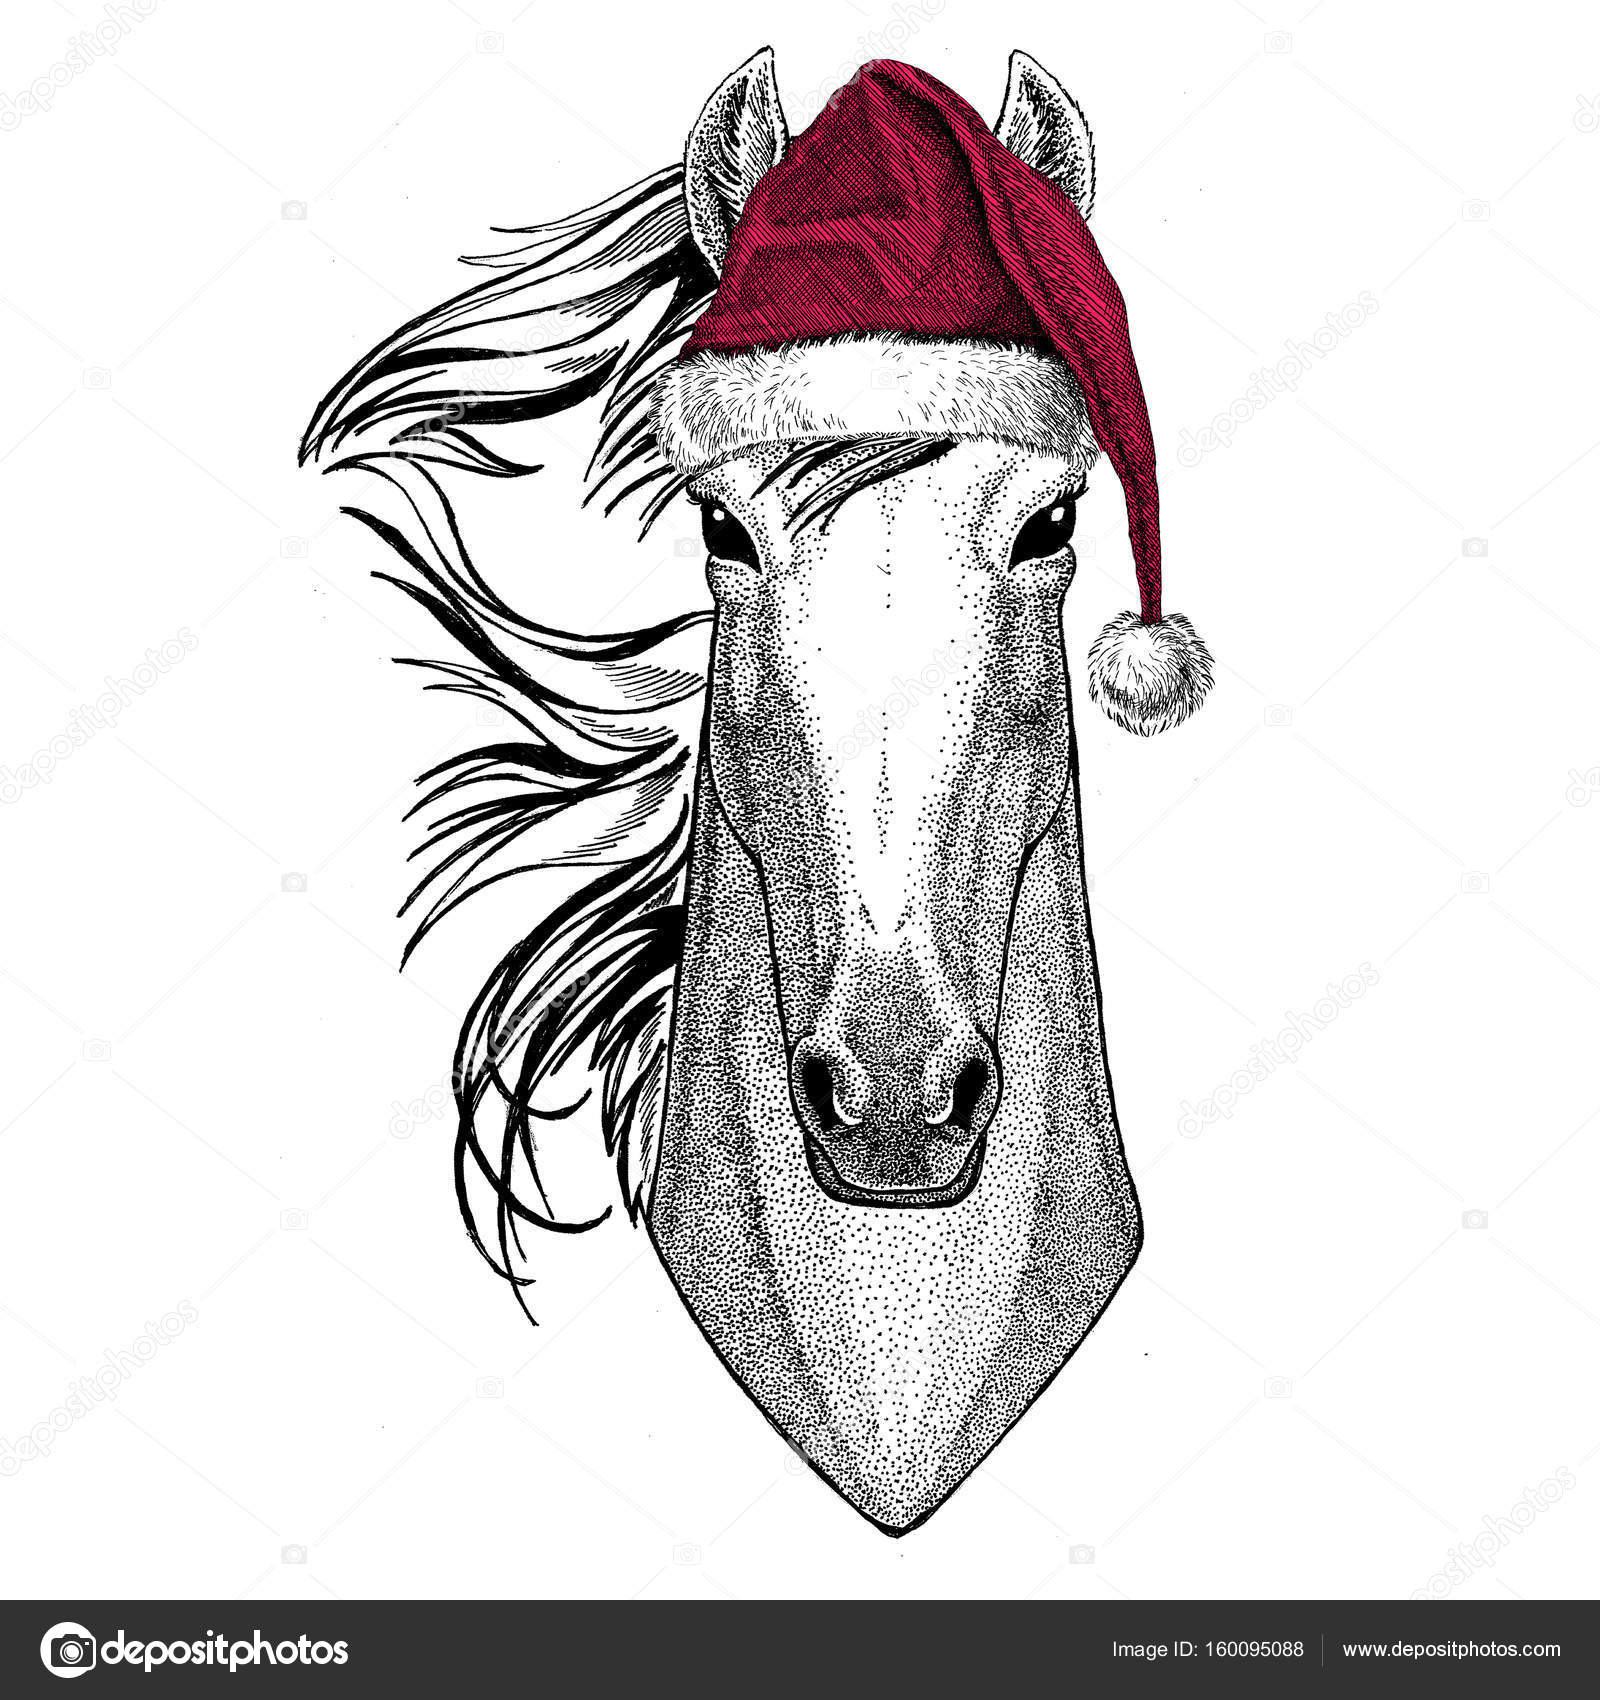 Horse Hoss Knight Steed Courser Christmas Illustration Wild Animal Wearing Christmas Santa Claus Hat Red Winter Hat Holiday Picture Happy New Year Stock Photo C Helen F 160095088